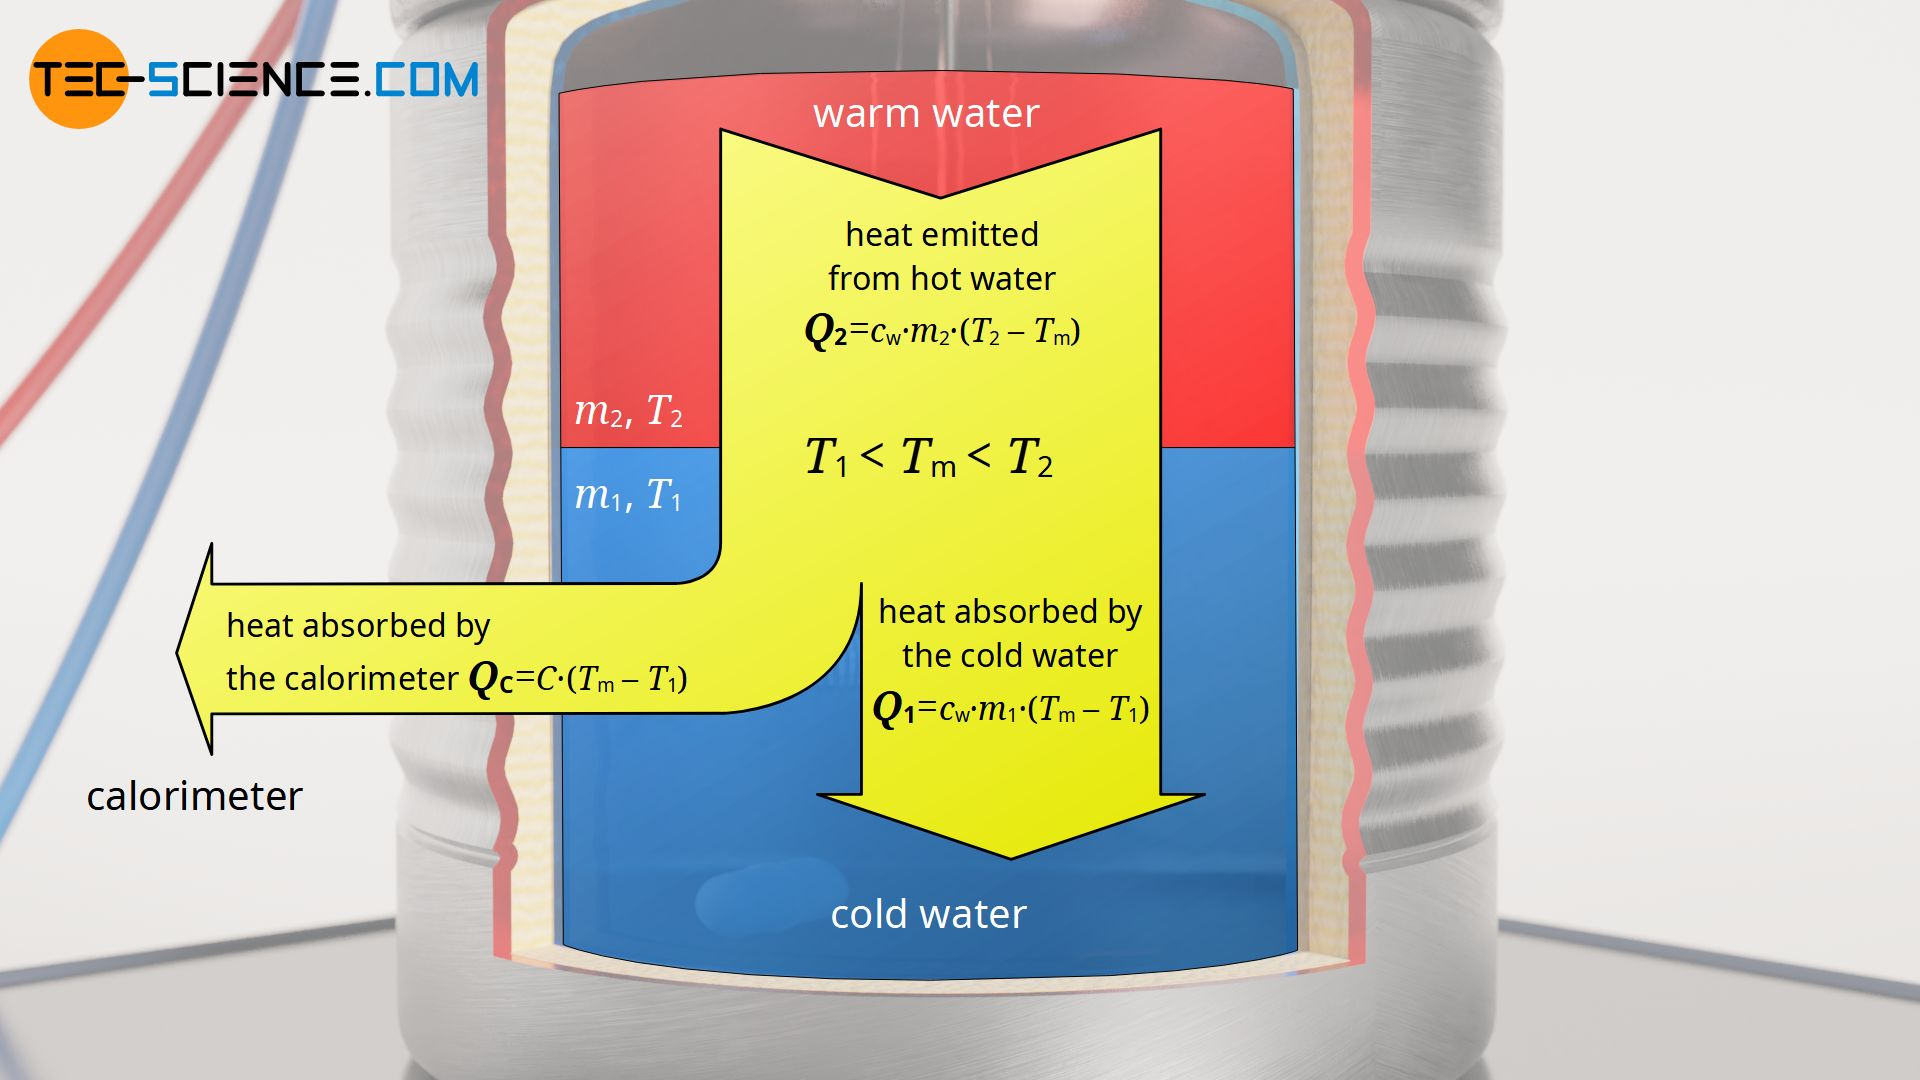 Energy flow diagram for determining the heat capacity of the calorimeter (water value).